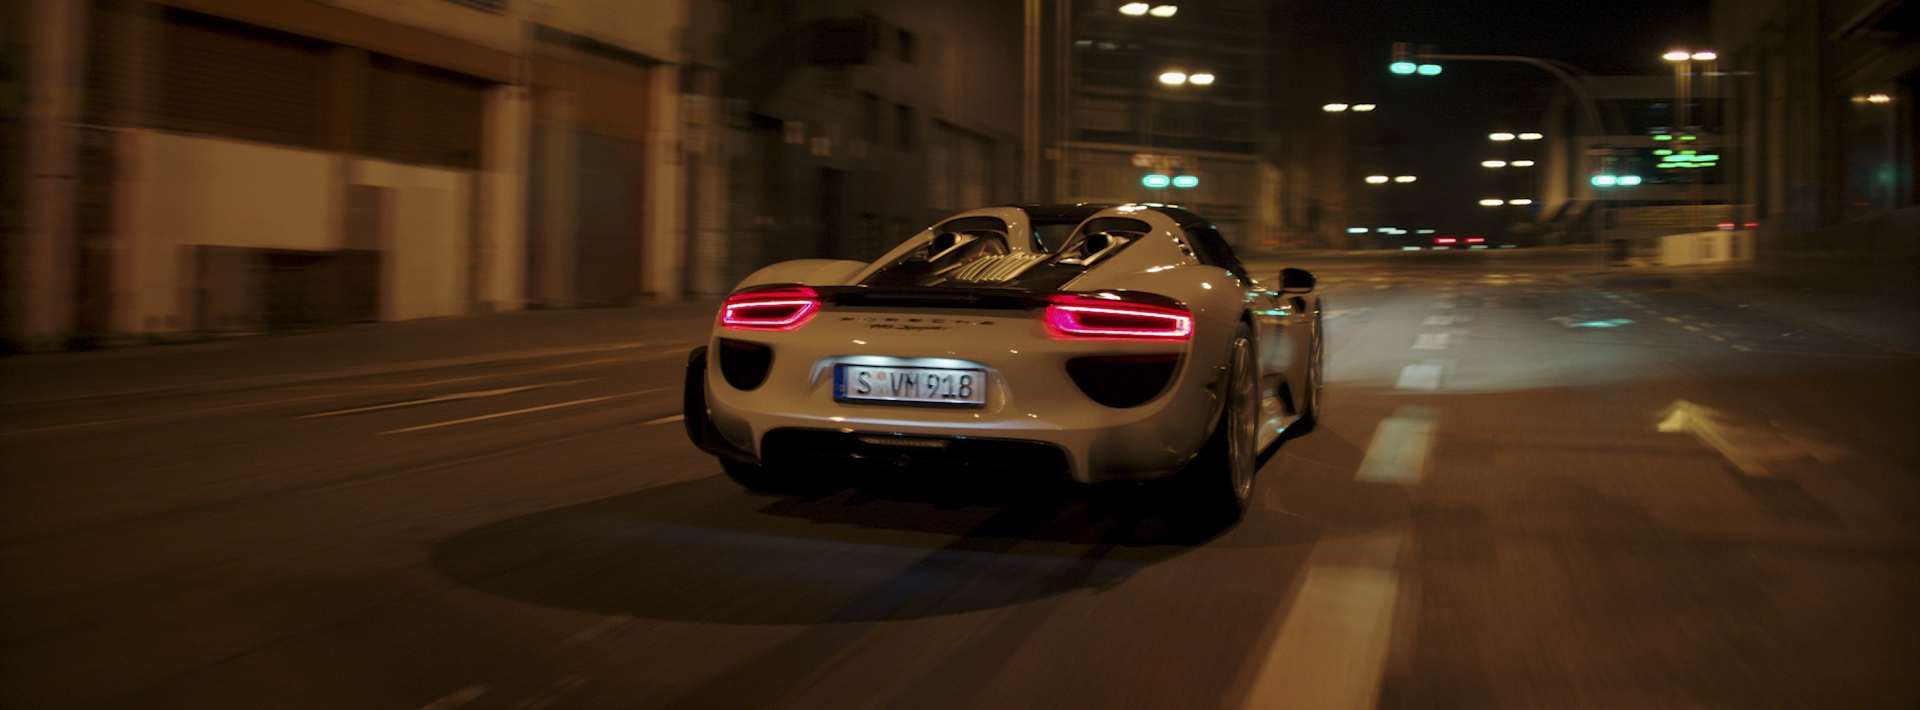 Porsche_E-Performance_Dir_Cut_1.1.28.jpg